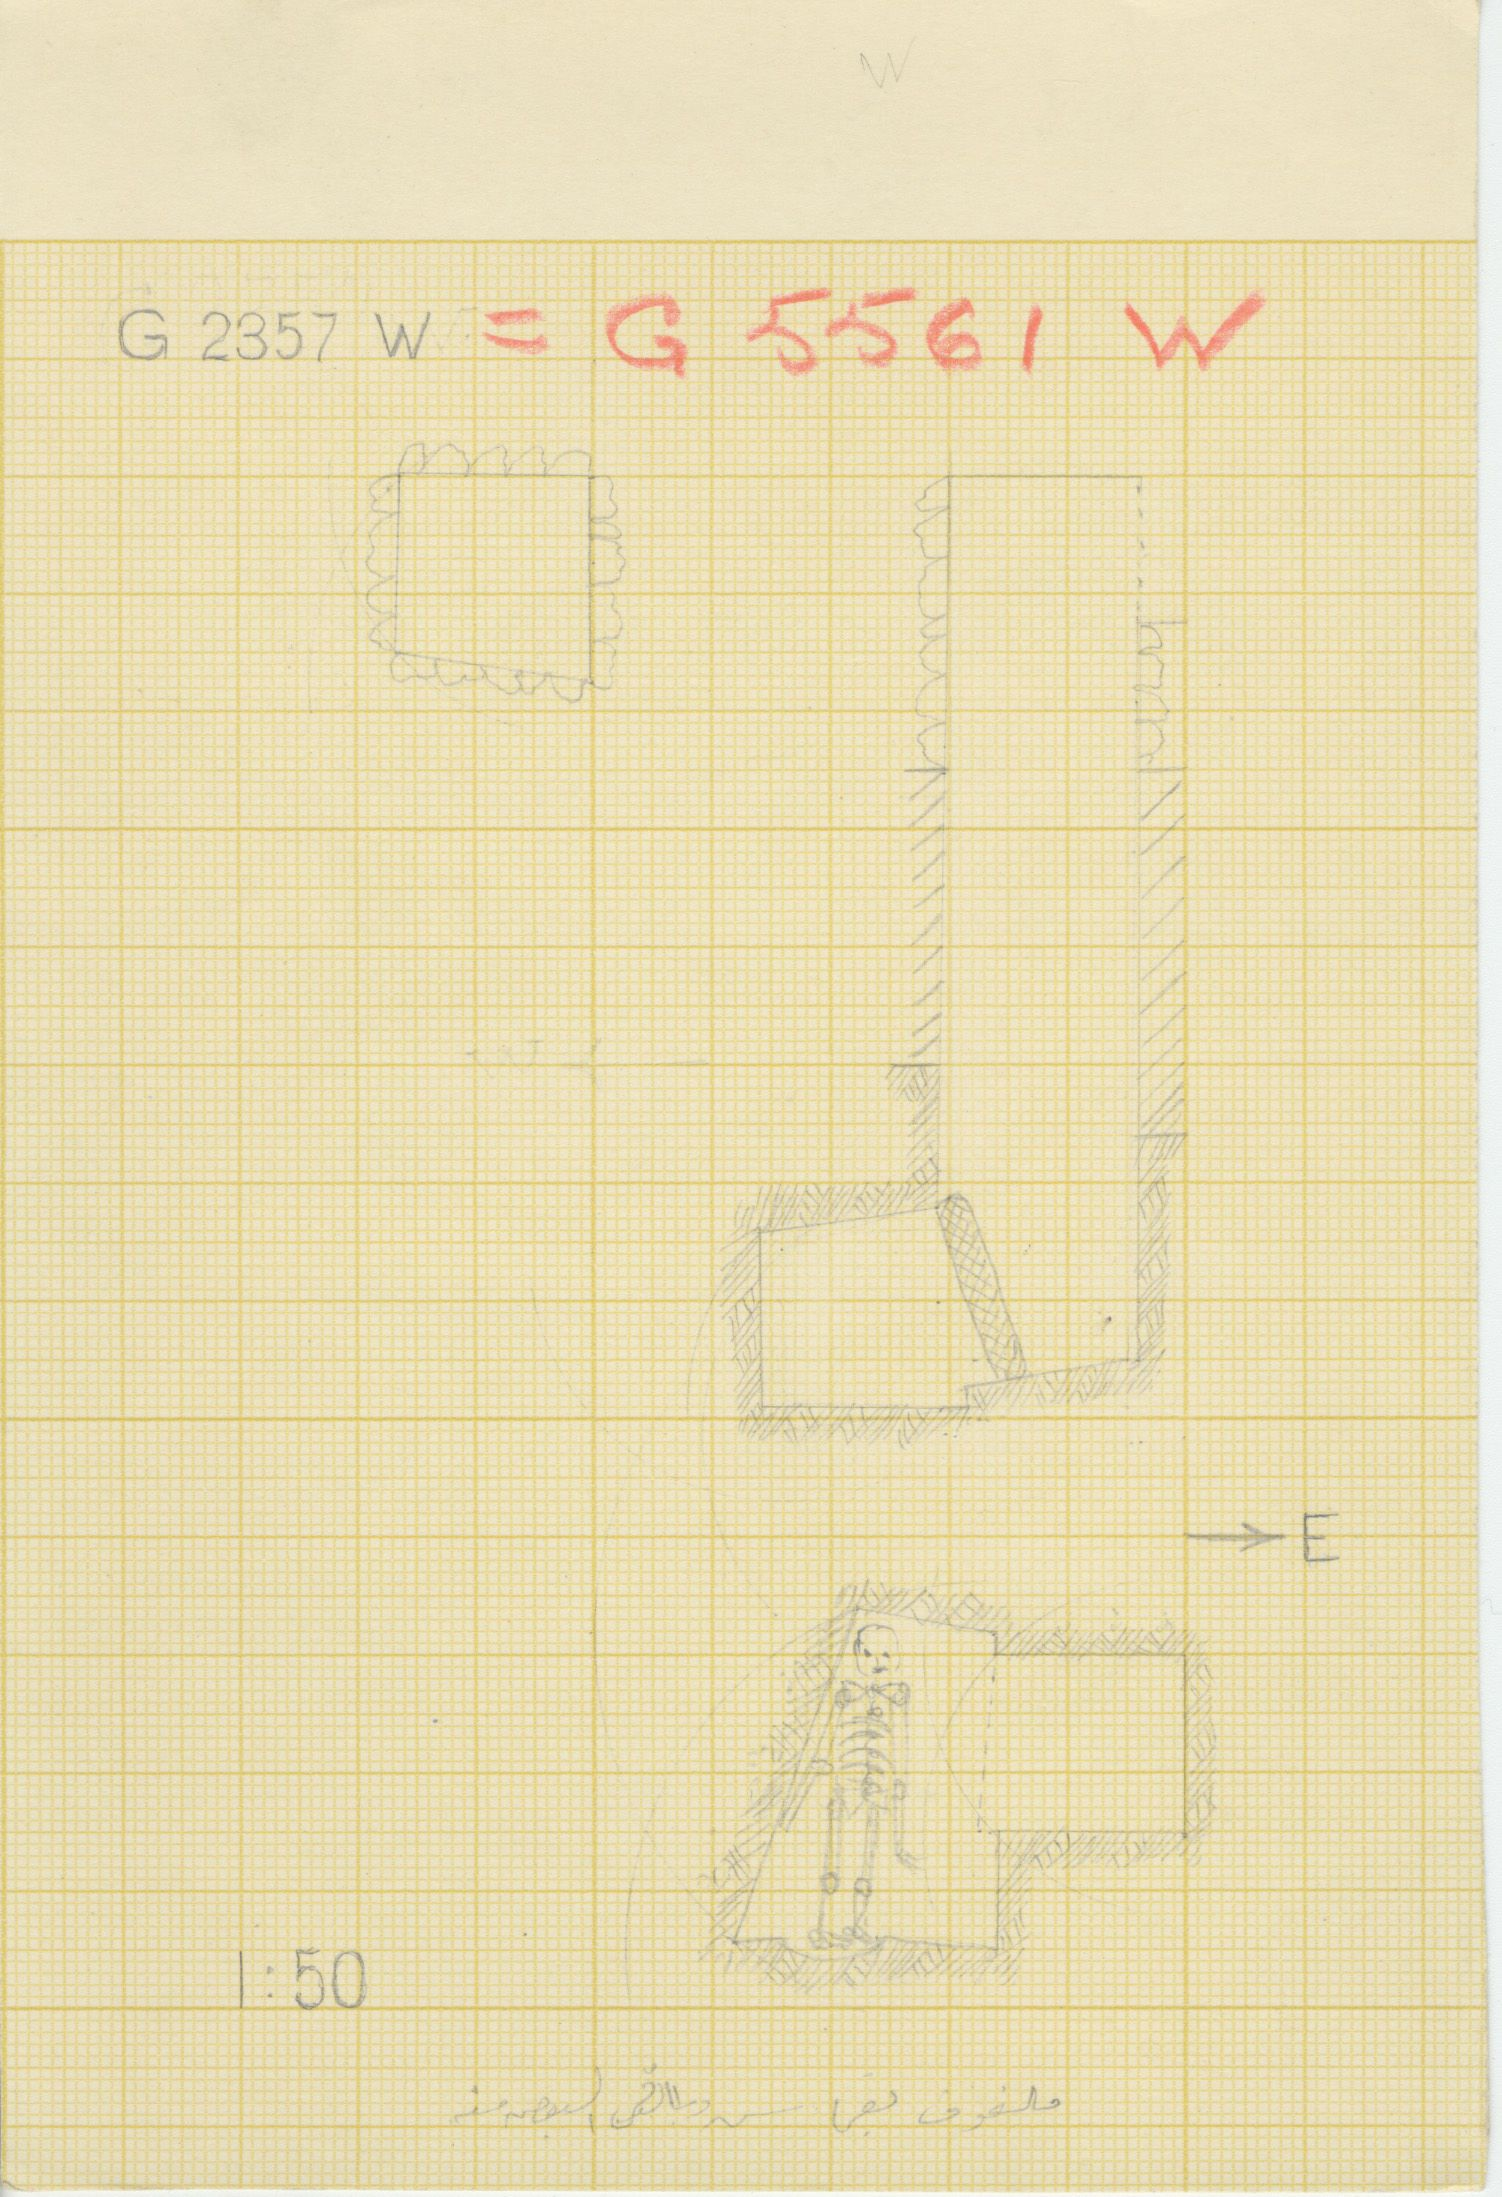 Maps and plans: G 2357 W = G 5561, Shaft W